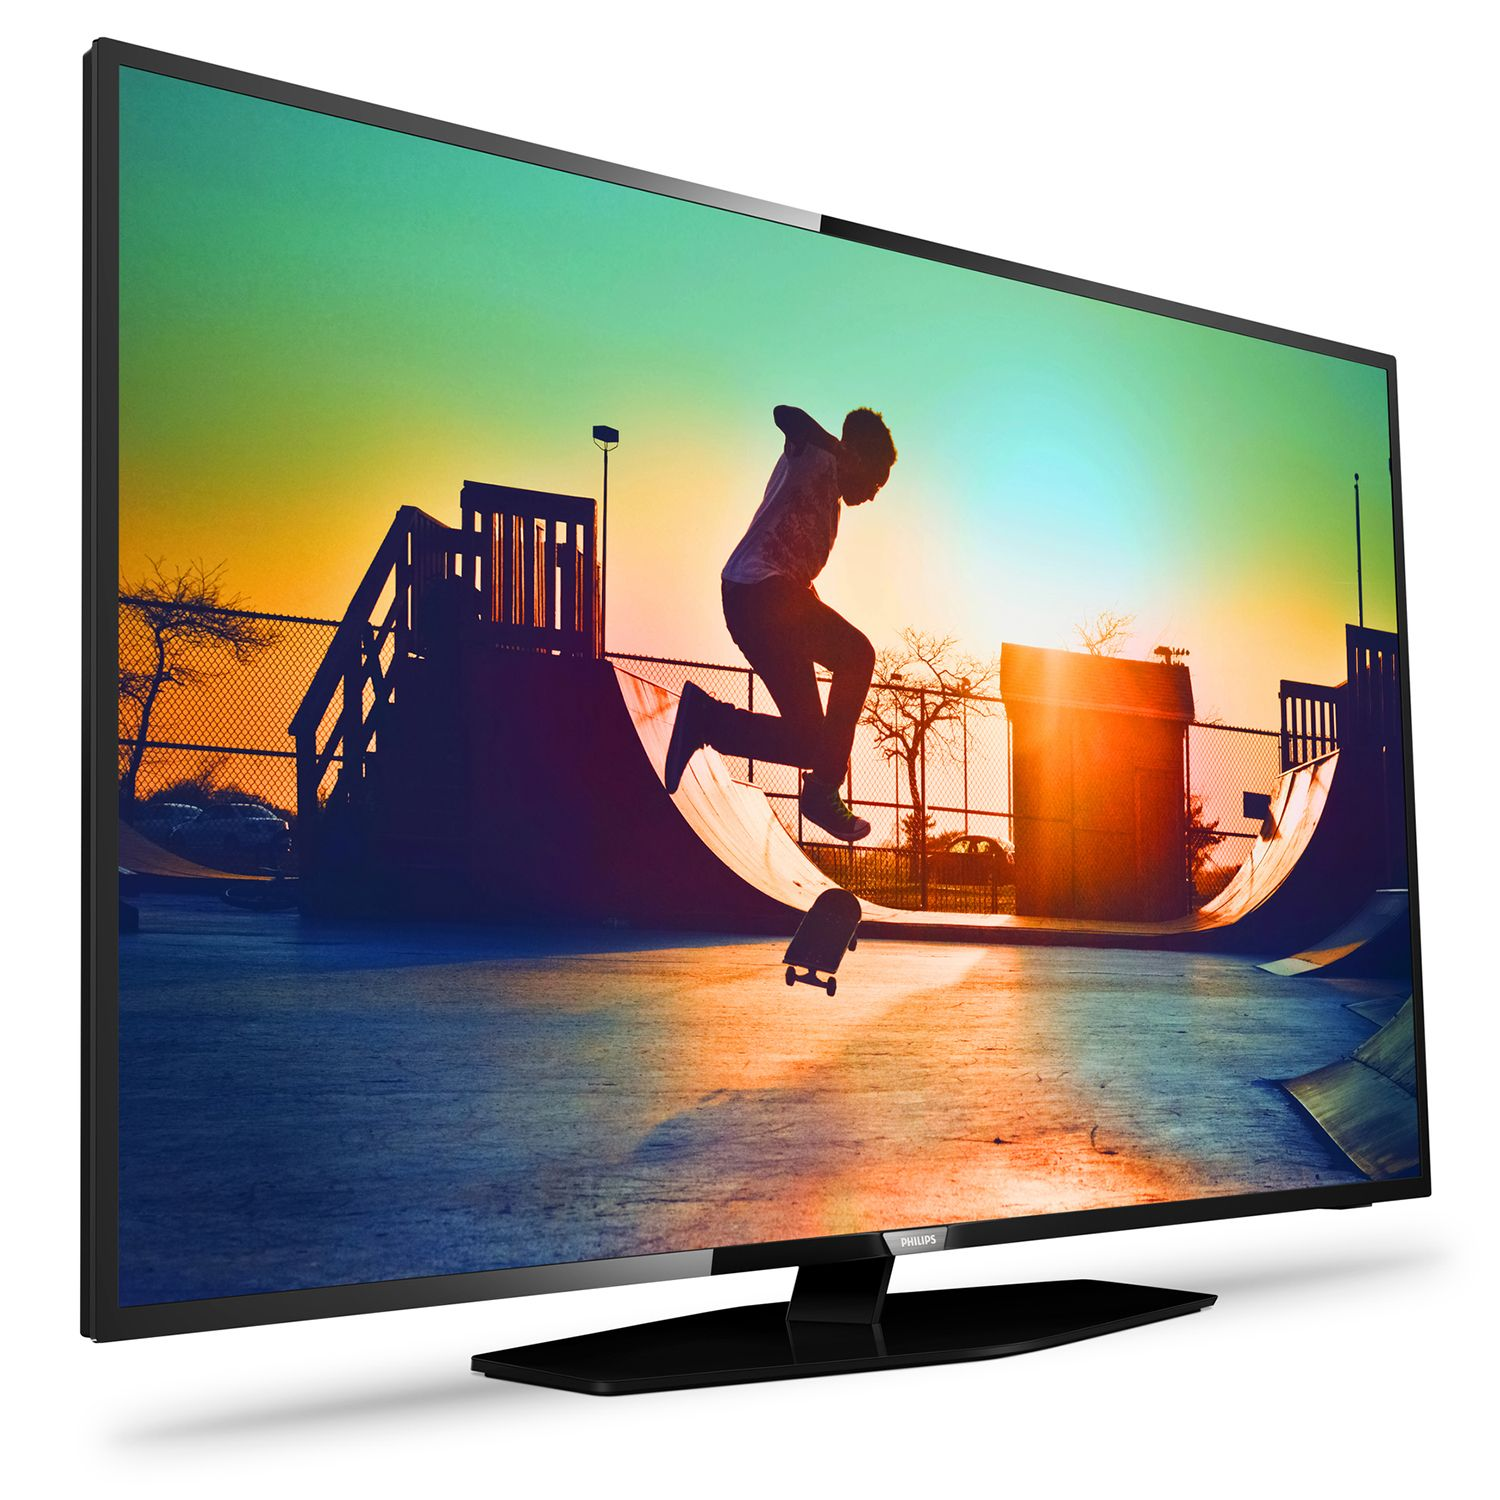 Телевизор Smart Philips, 50`` (126 cм), 50PUS6162/12, 4K Ultra HD